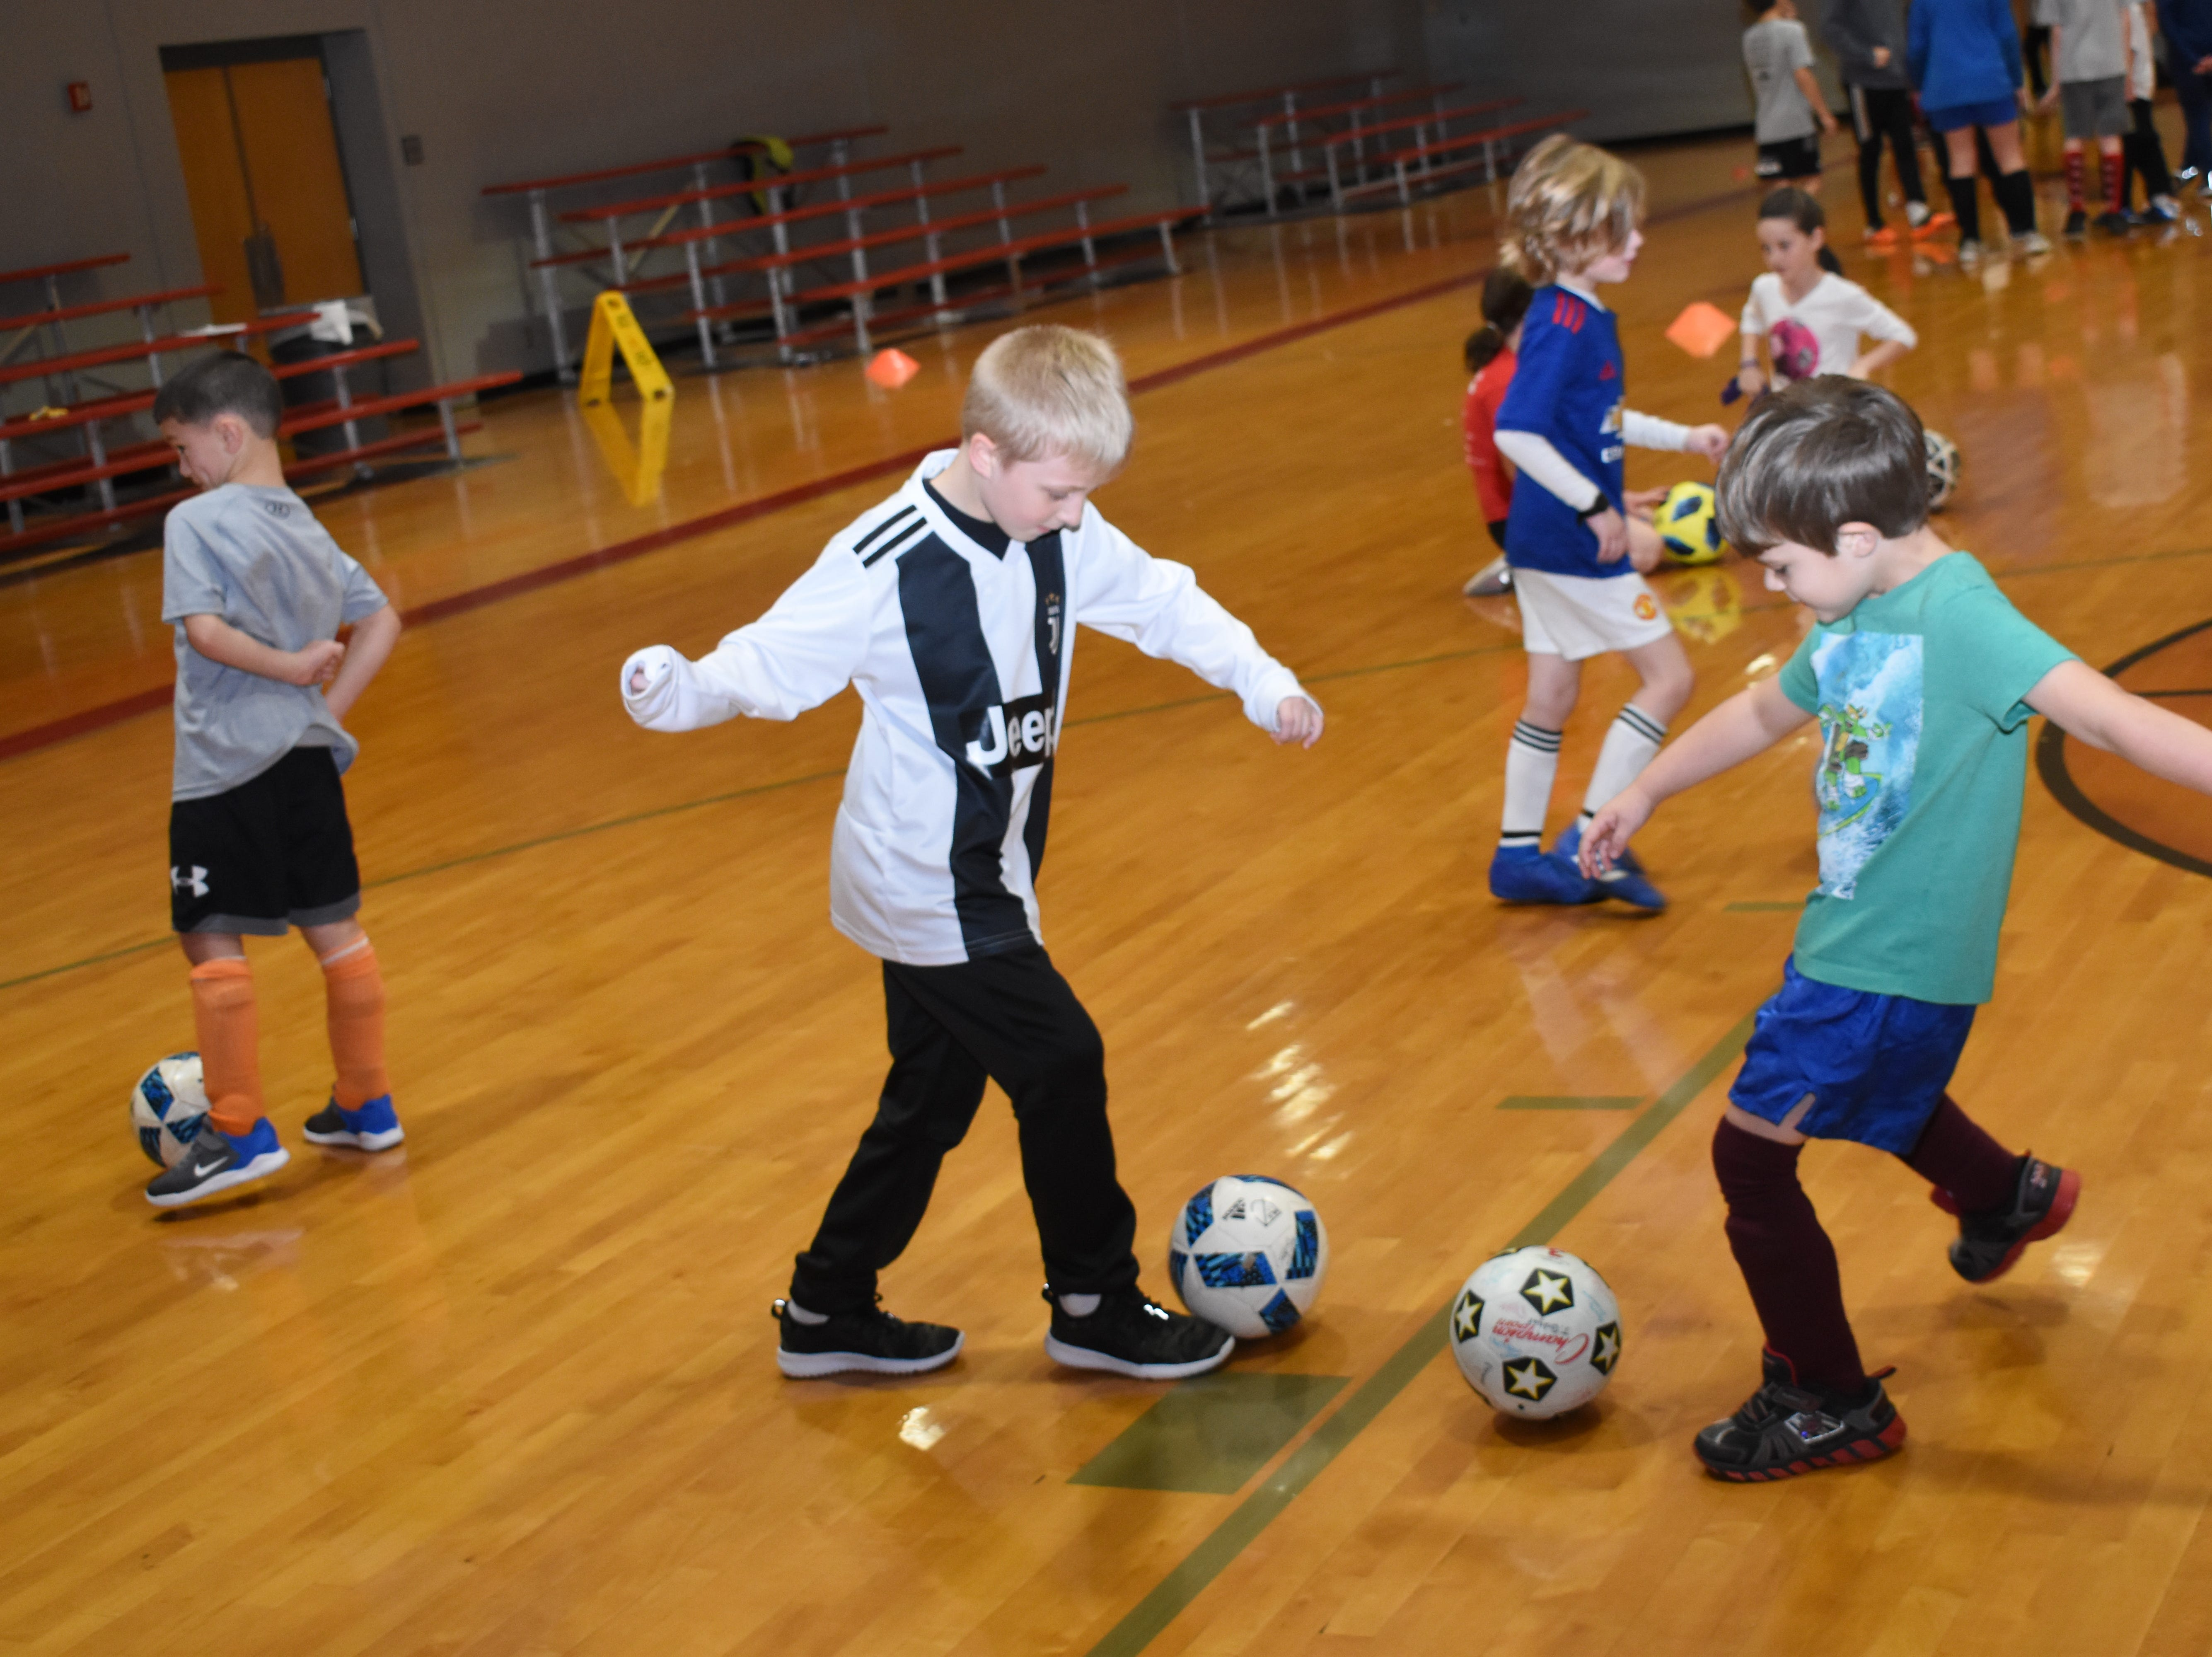 """Pineville High School seniors and soccer players Brandon Cespiva and Ridah Alkaabi host a kids' soccer clinic as their senior project. """"It's kids 'K' through eight,"""" said Cespiva. """"And we're mainly just going to have fun, learn the game and just see smilies on kids' faces."""" The two-day camp has over 75 participants.His brother Brian Cespiva hosted a kids' camp for baseball as his senior project. """"I worked at his just to get a feel because I knew when my time came, I'd be doing the same thing for kids,"""" said Cespiva."""